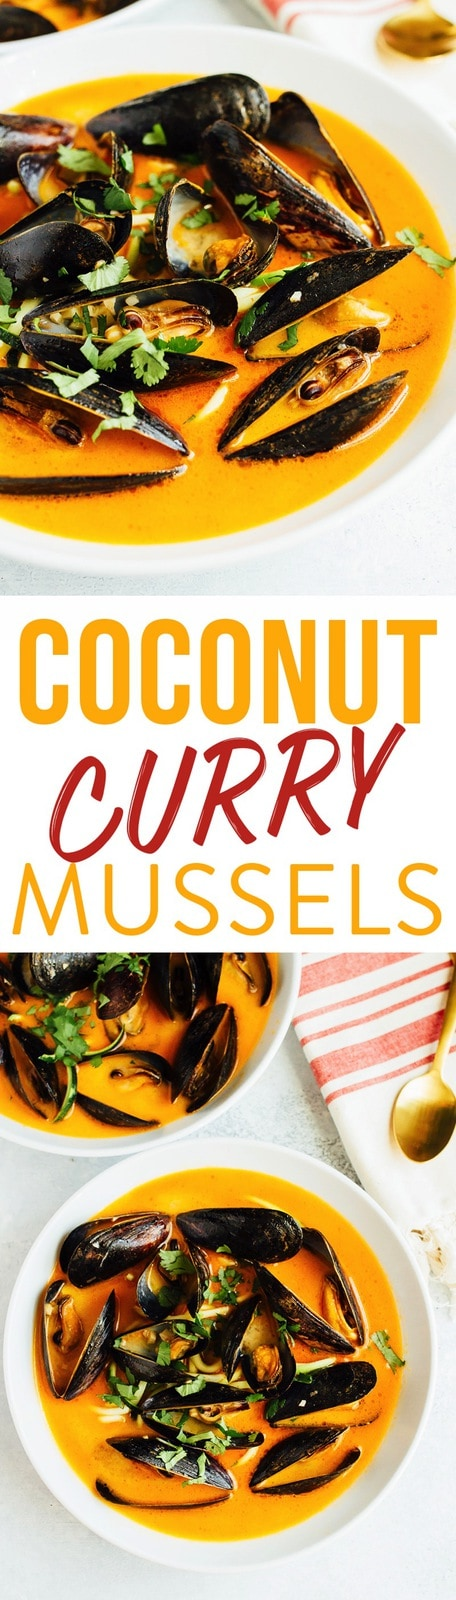 EASY COCONUT CURRY MUSSELS WITH ZUCCHINI NOODLES // paleo and gluten-free